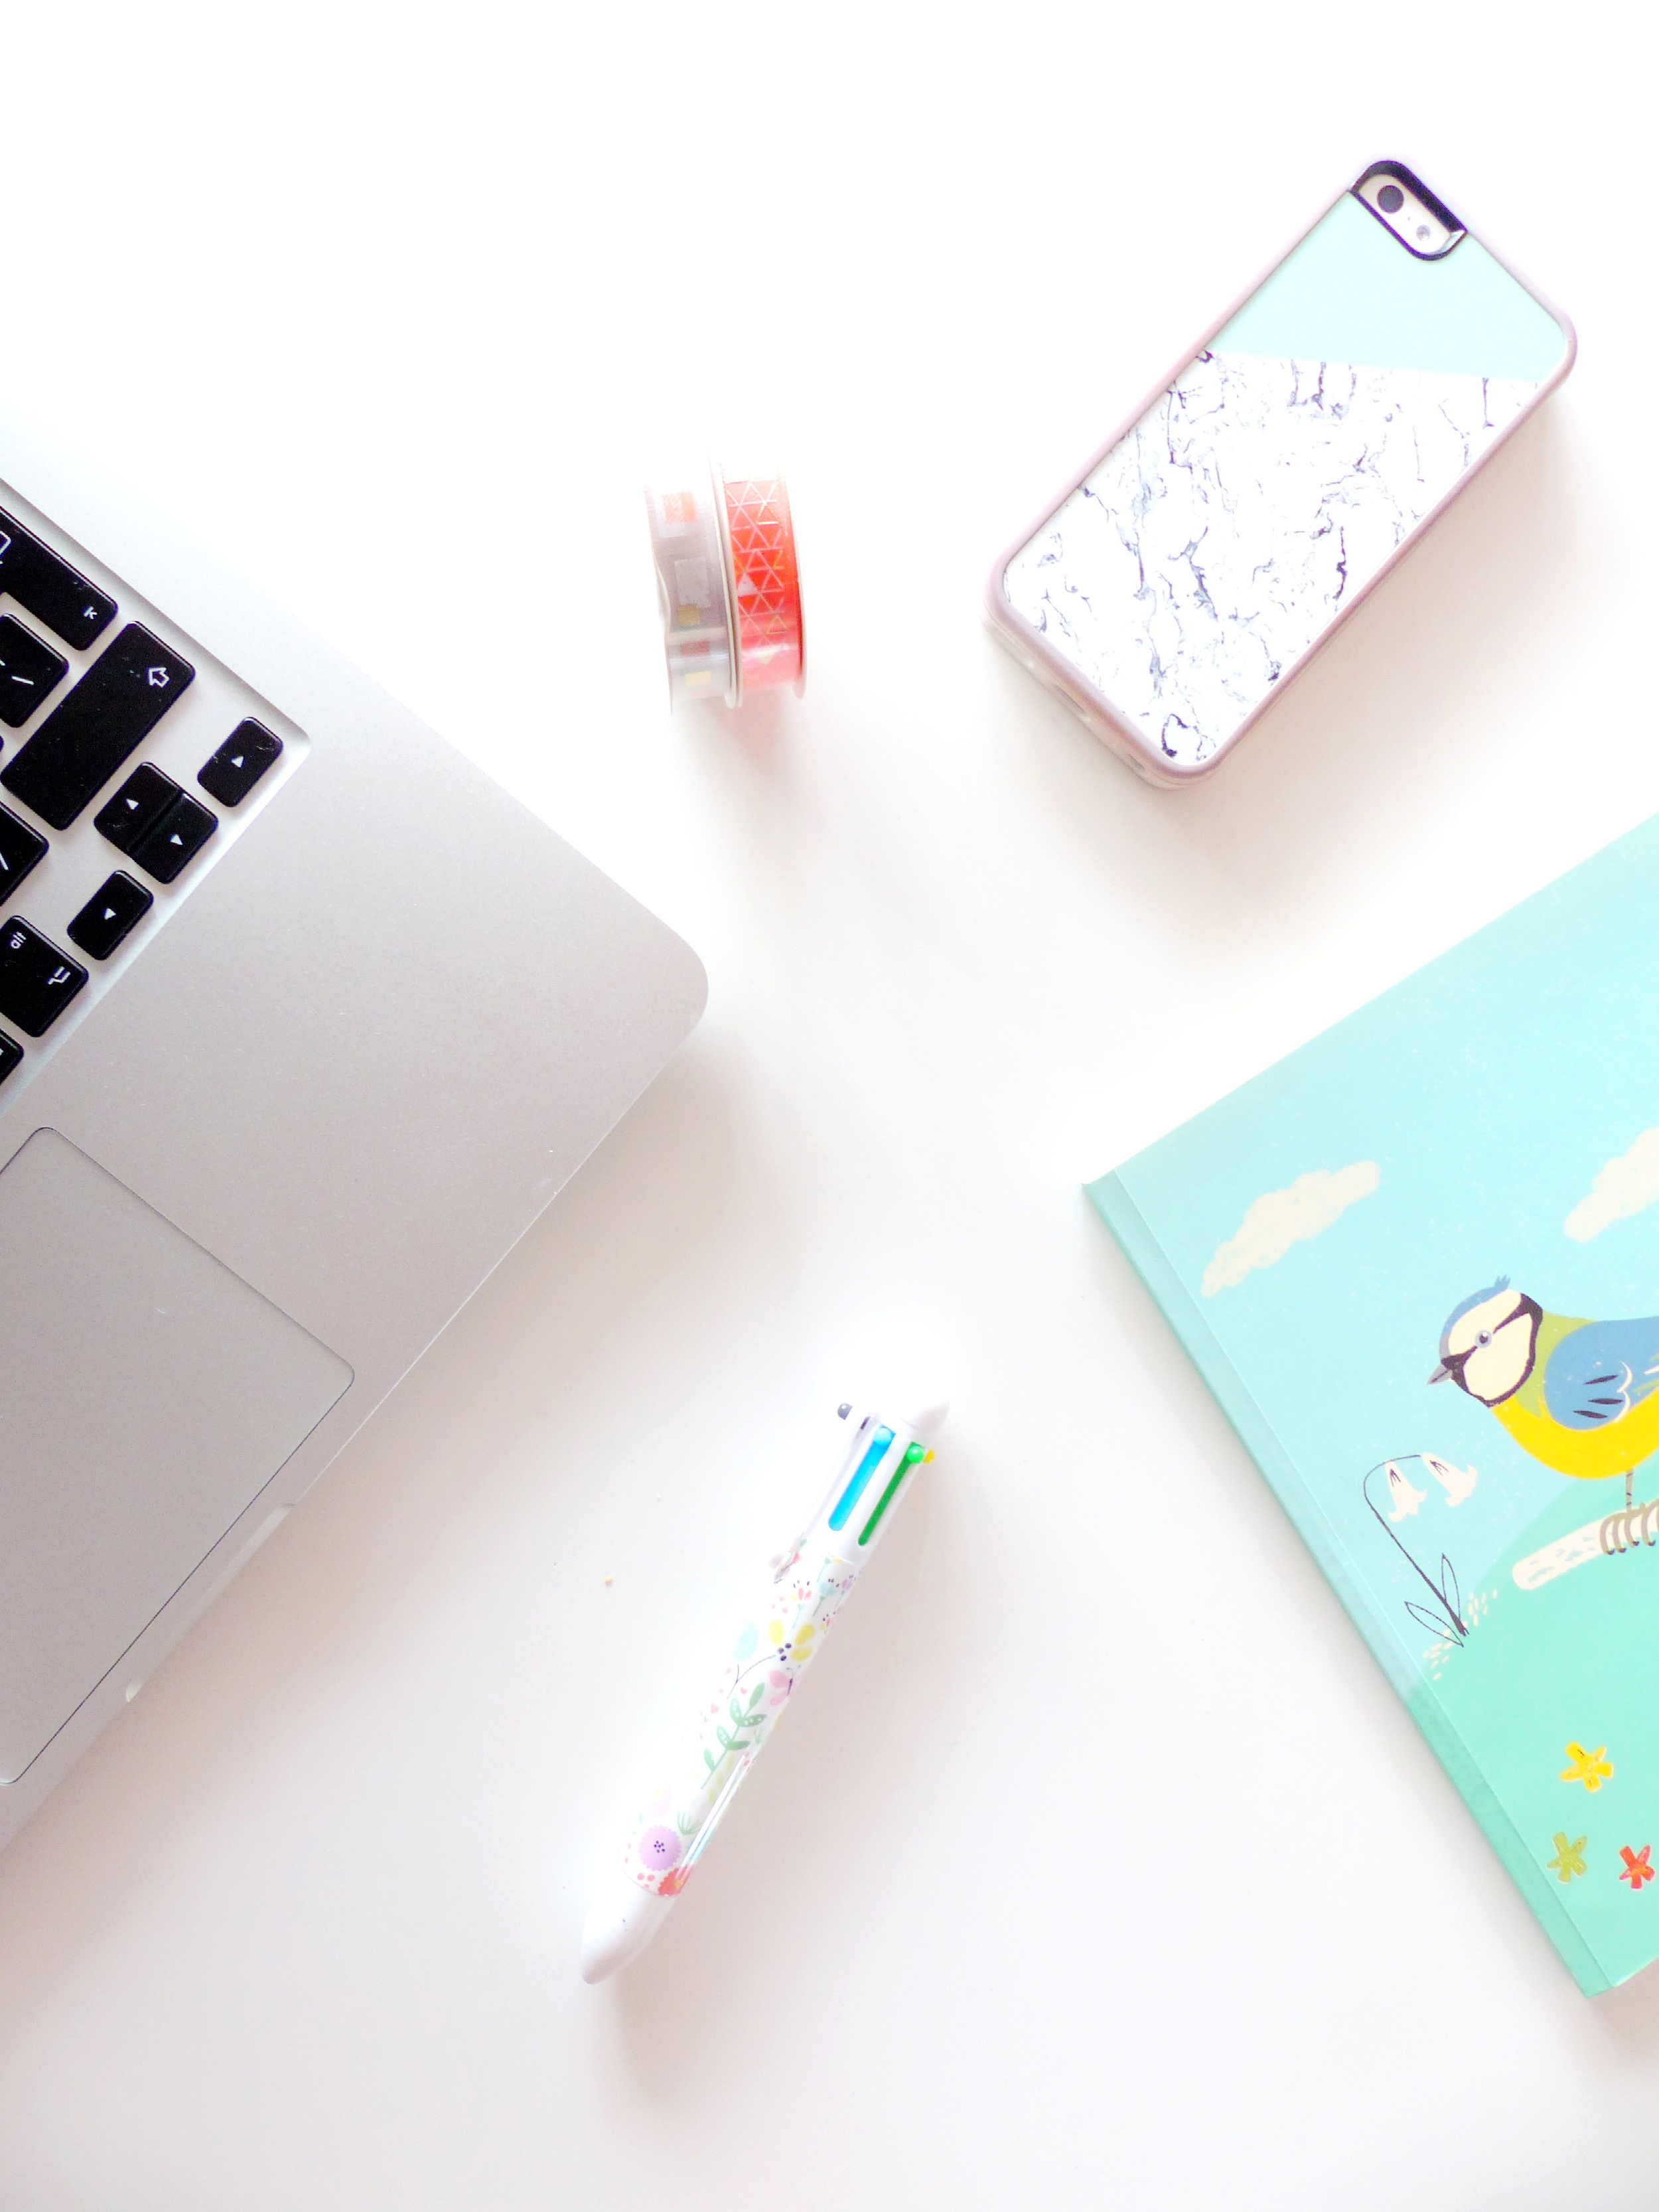 11 of the Best Skills You Need if You Want a Career in Marketing